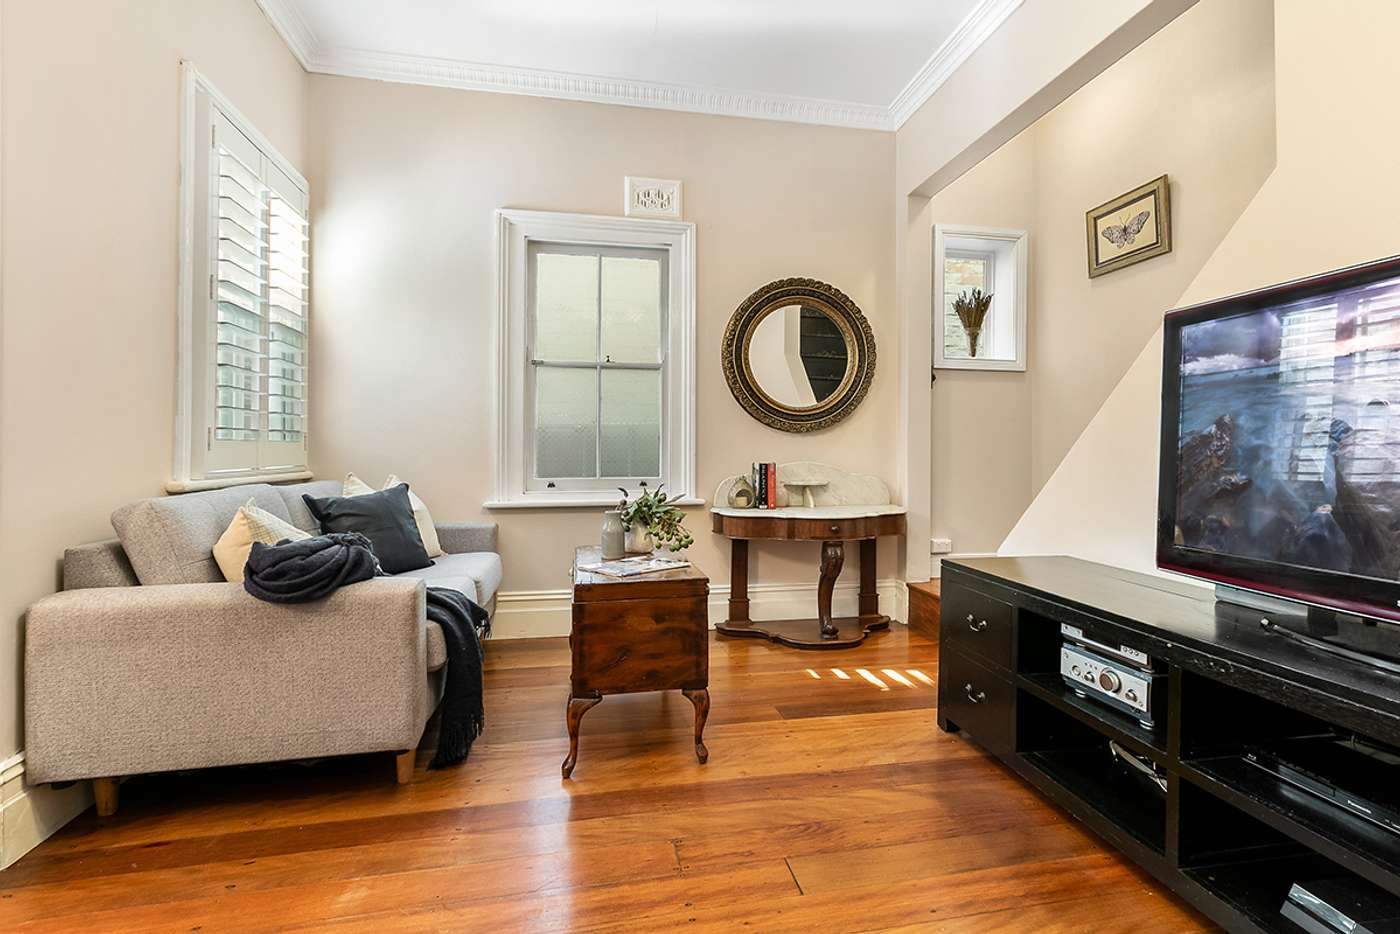 Sixth view of Homely house listing, 214 Corunna Road, Petersham NSW 2049